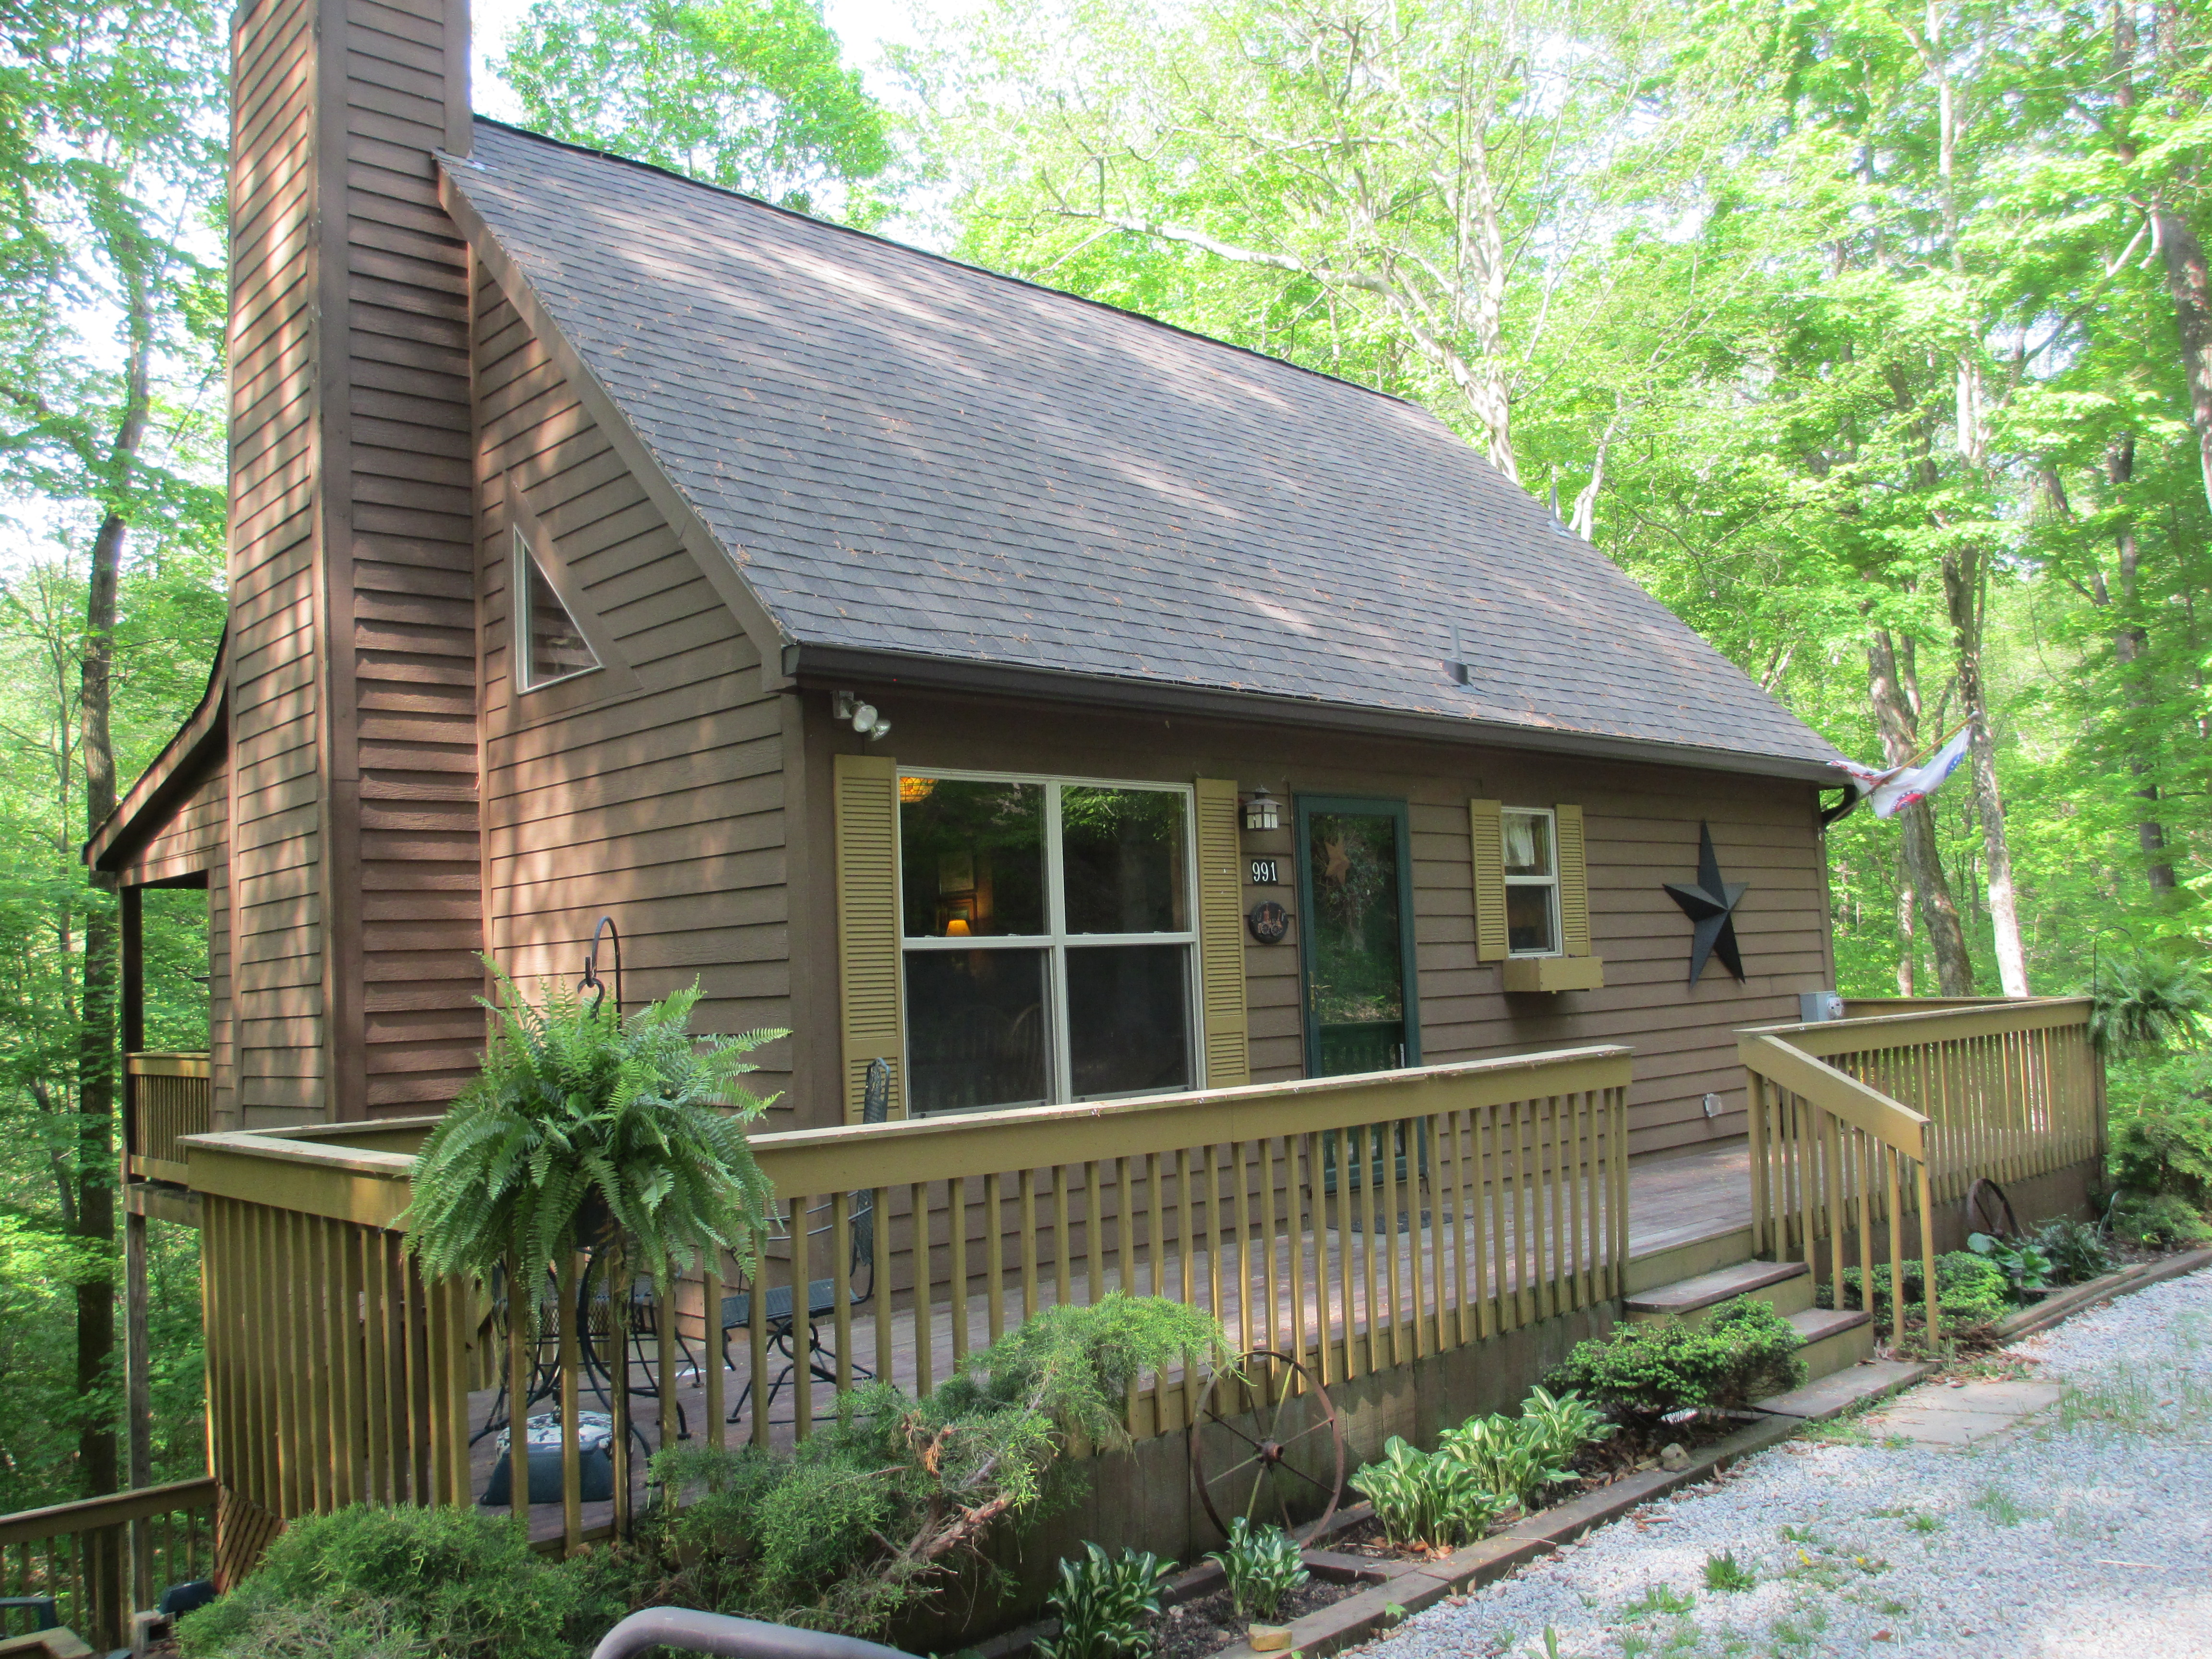 991 Sauk Lane - UNDER CONTRACT